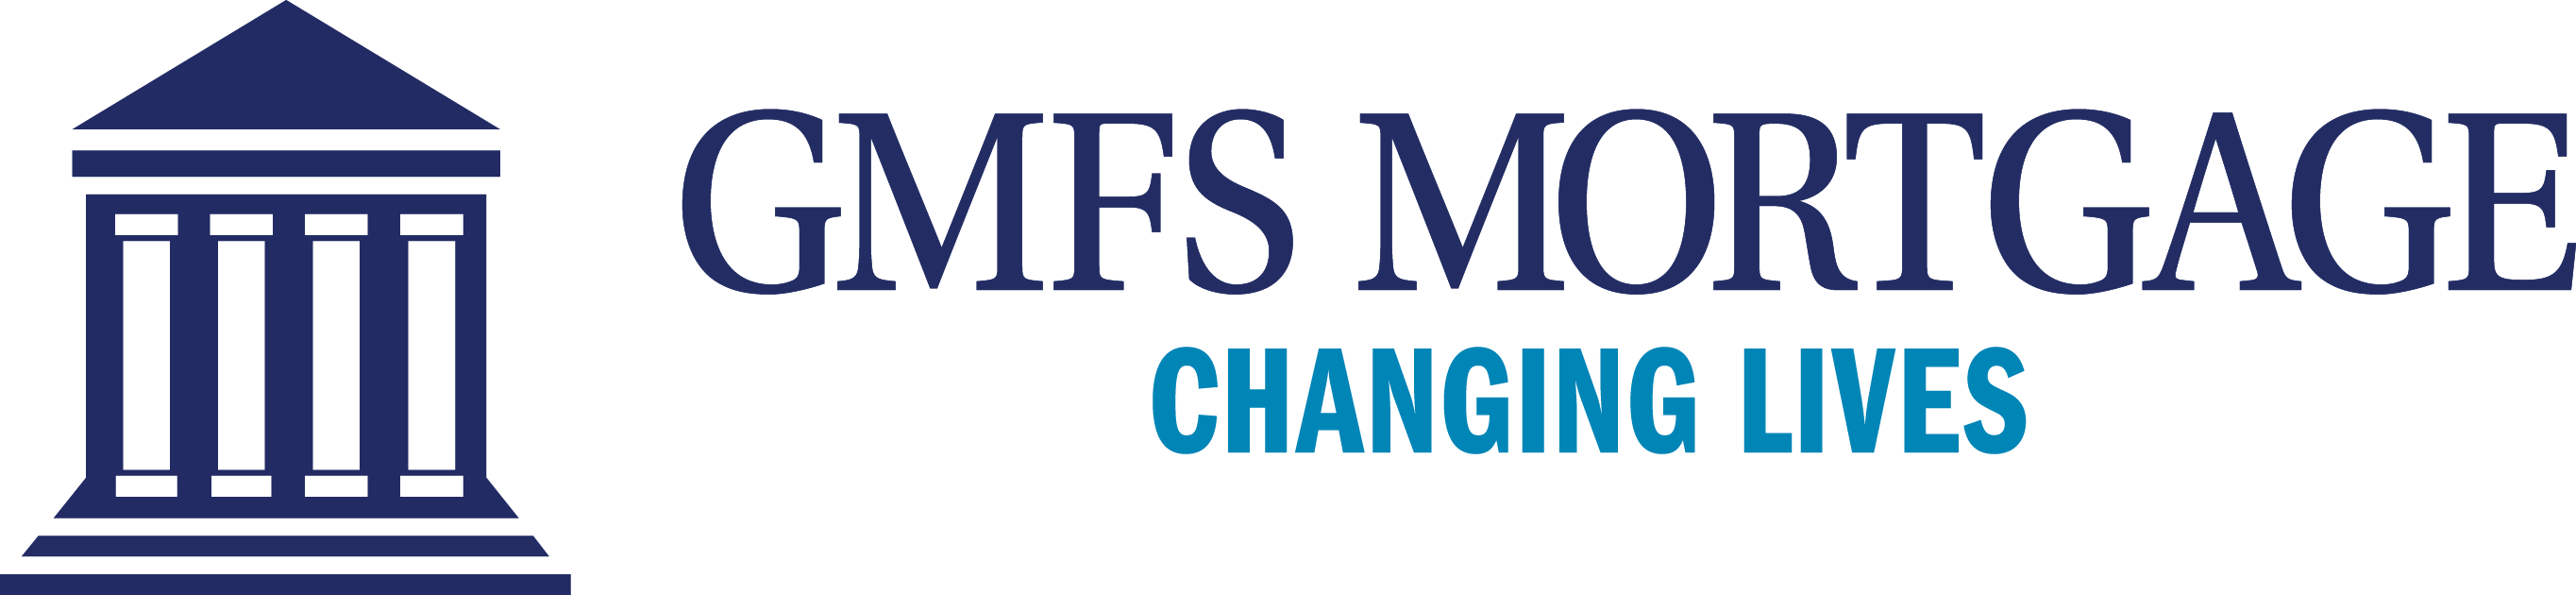 GMFS Mortgage – Baton Rouge, LA (Corporate)